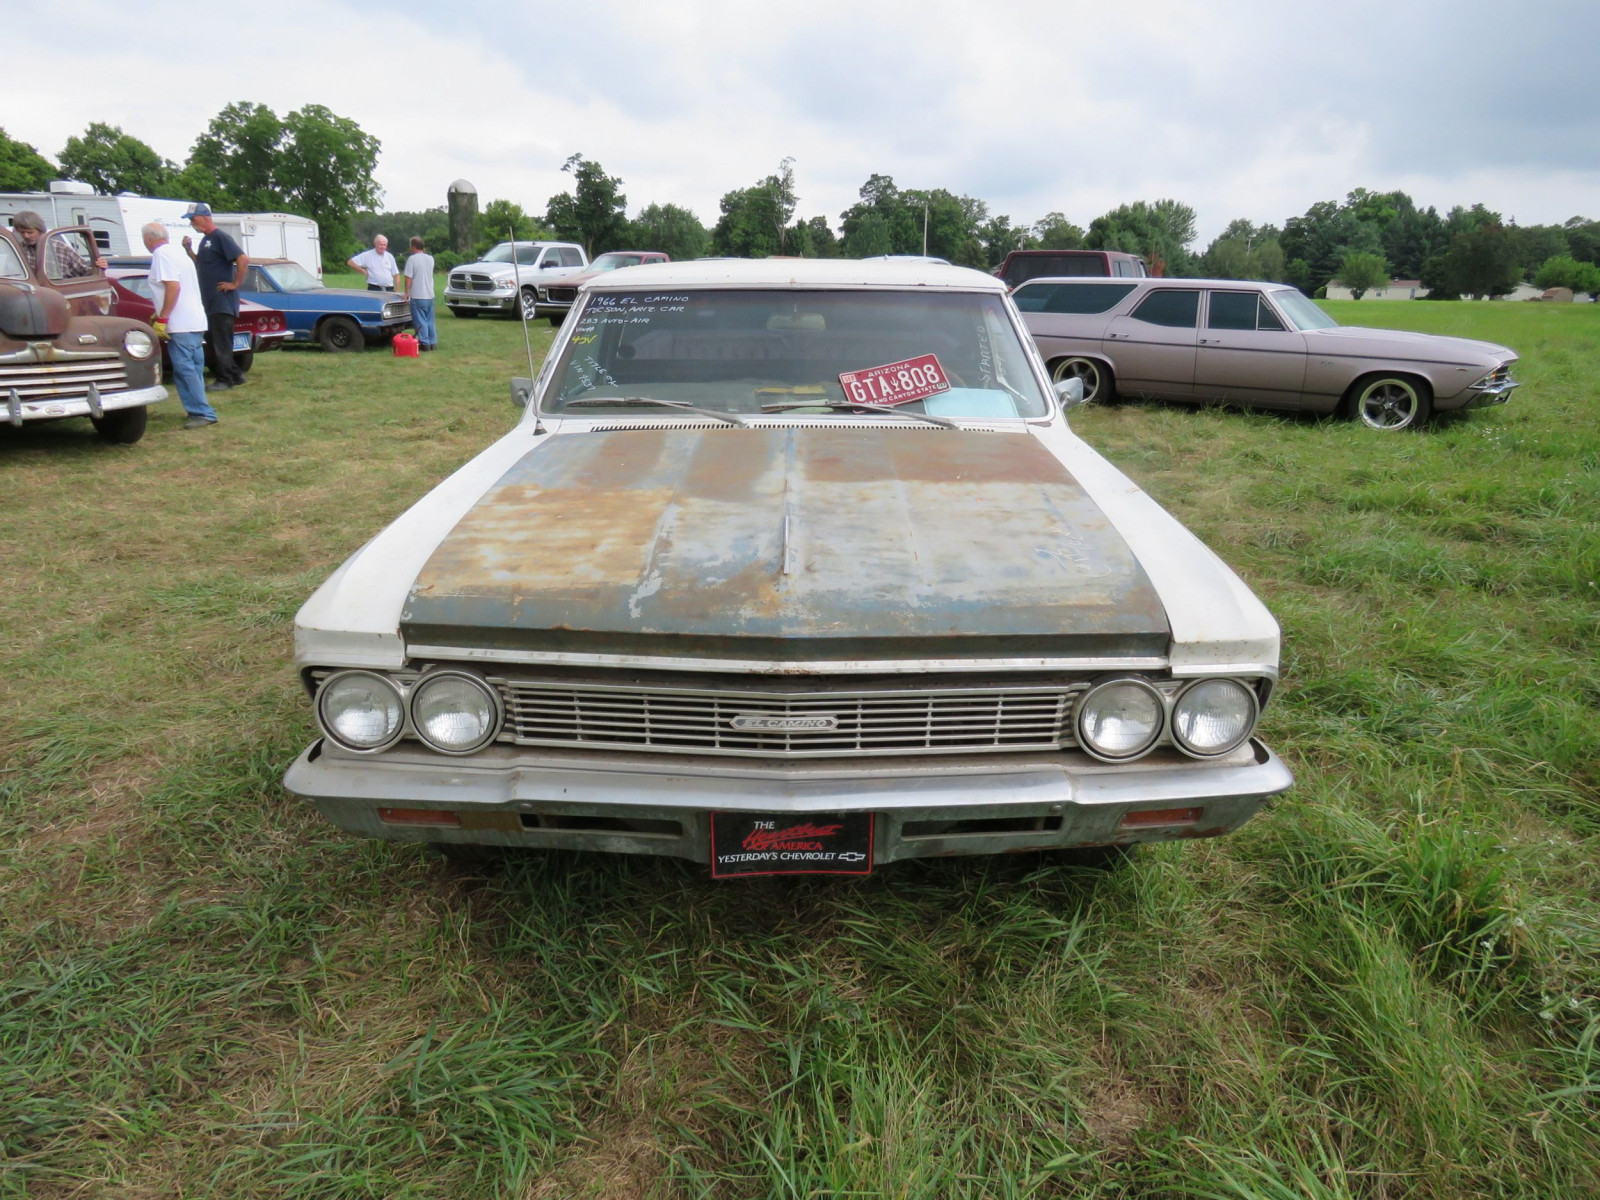 Lot 45v 1966 Chevrolet El Camino Vanderbrink Auctions Image 2